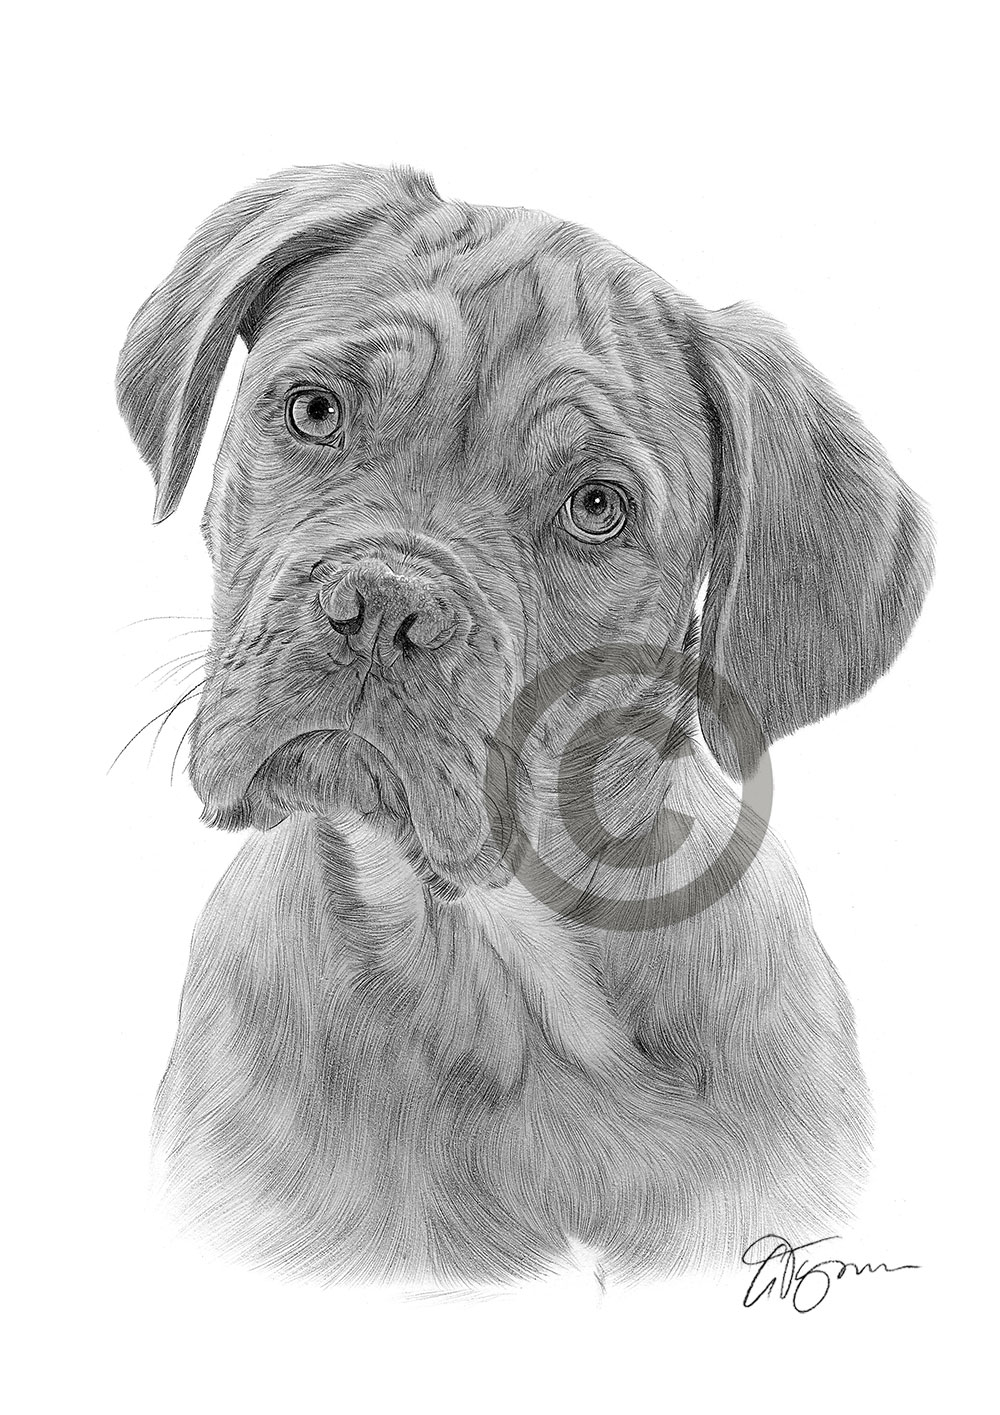 Dogue De Bordeaux pencil drawing by artist Gary Tymon